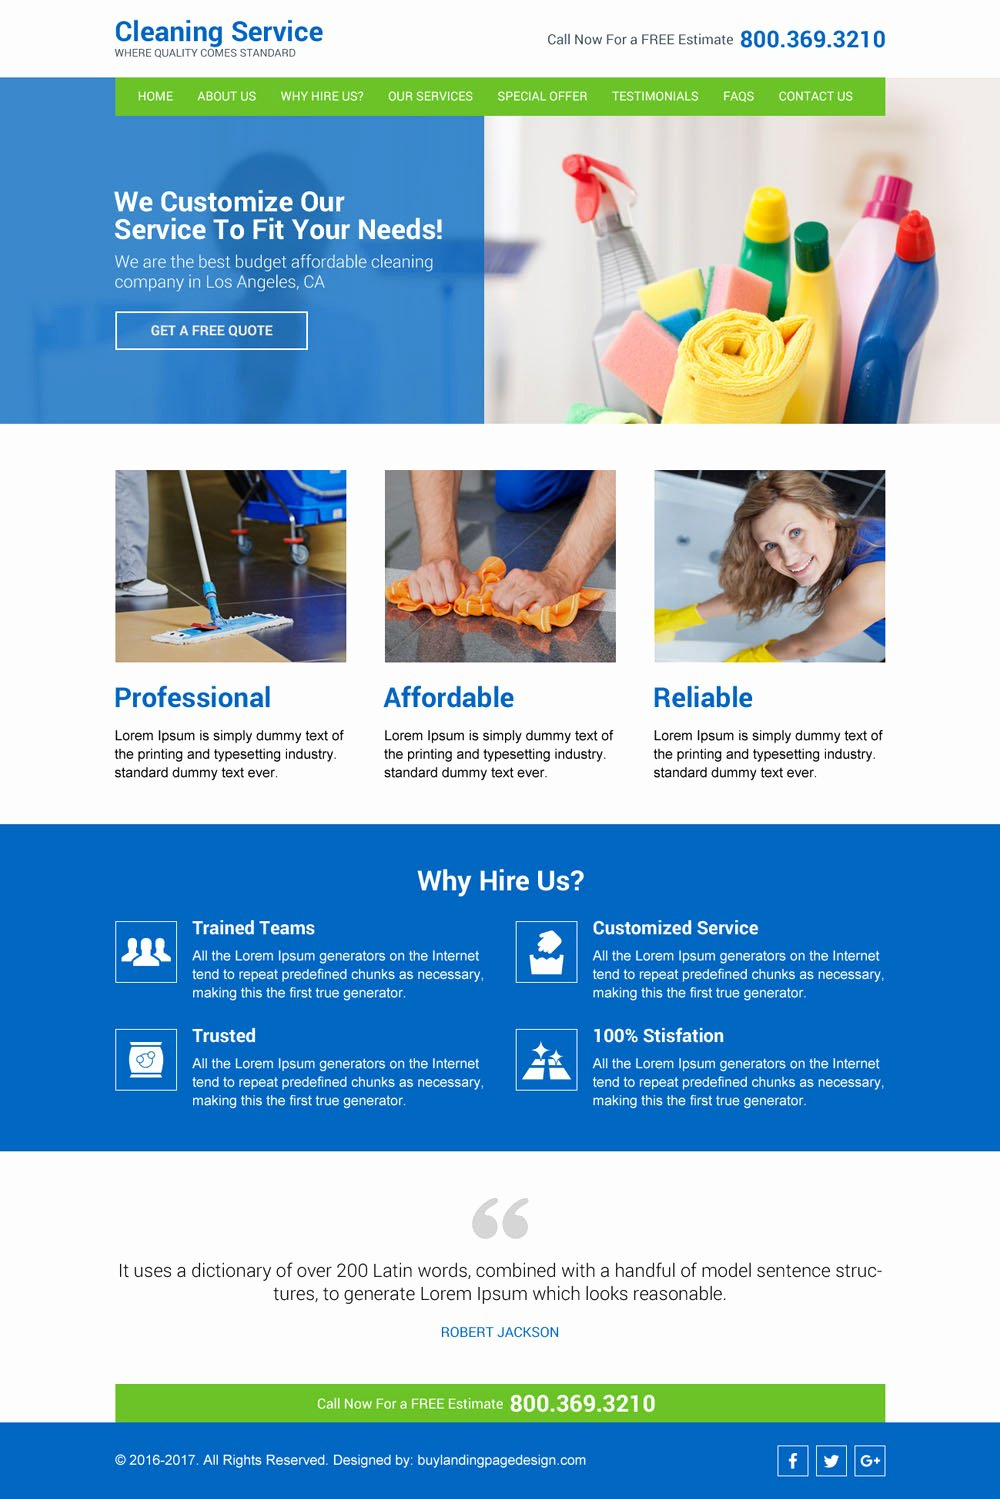 Cleaning Services Website Template Lovely Cleaning Service Pany Website 02